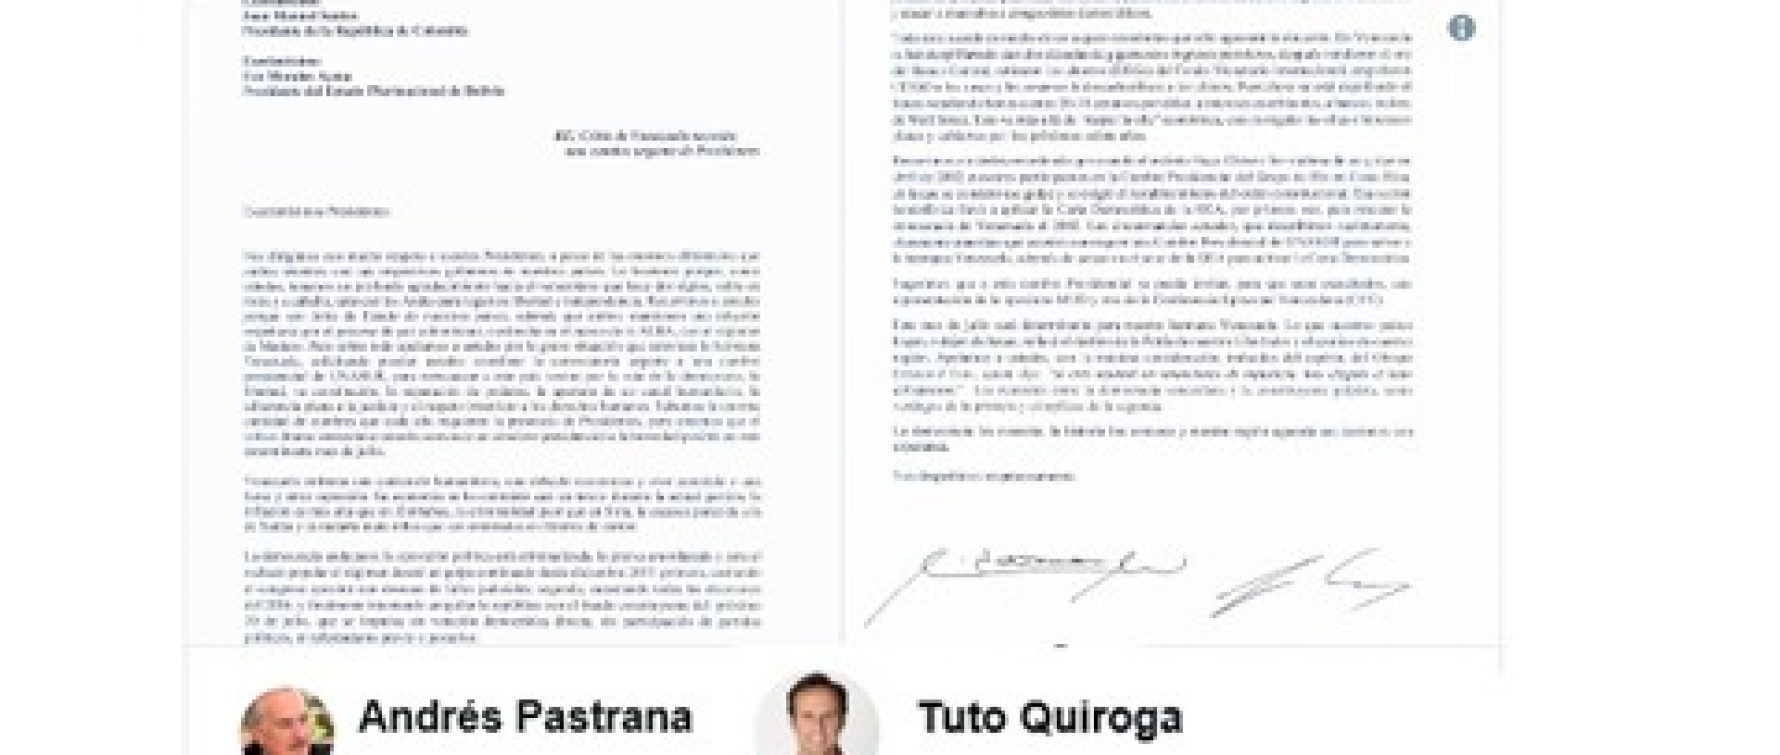 Letter of the expresidents Andrés Pastrana and Tuto Quiroga, to the presidents Juan Manuel Santos and Evo Morales